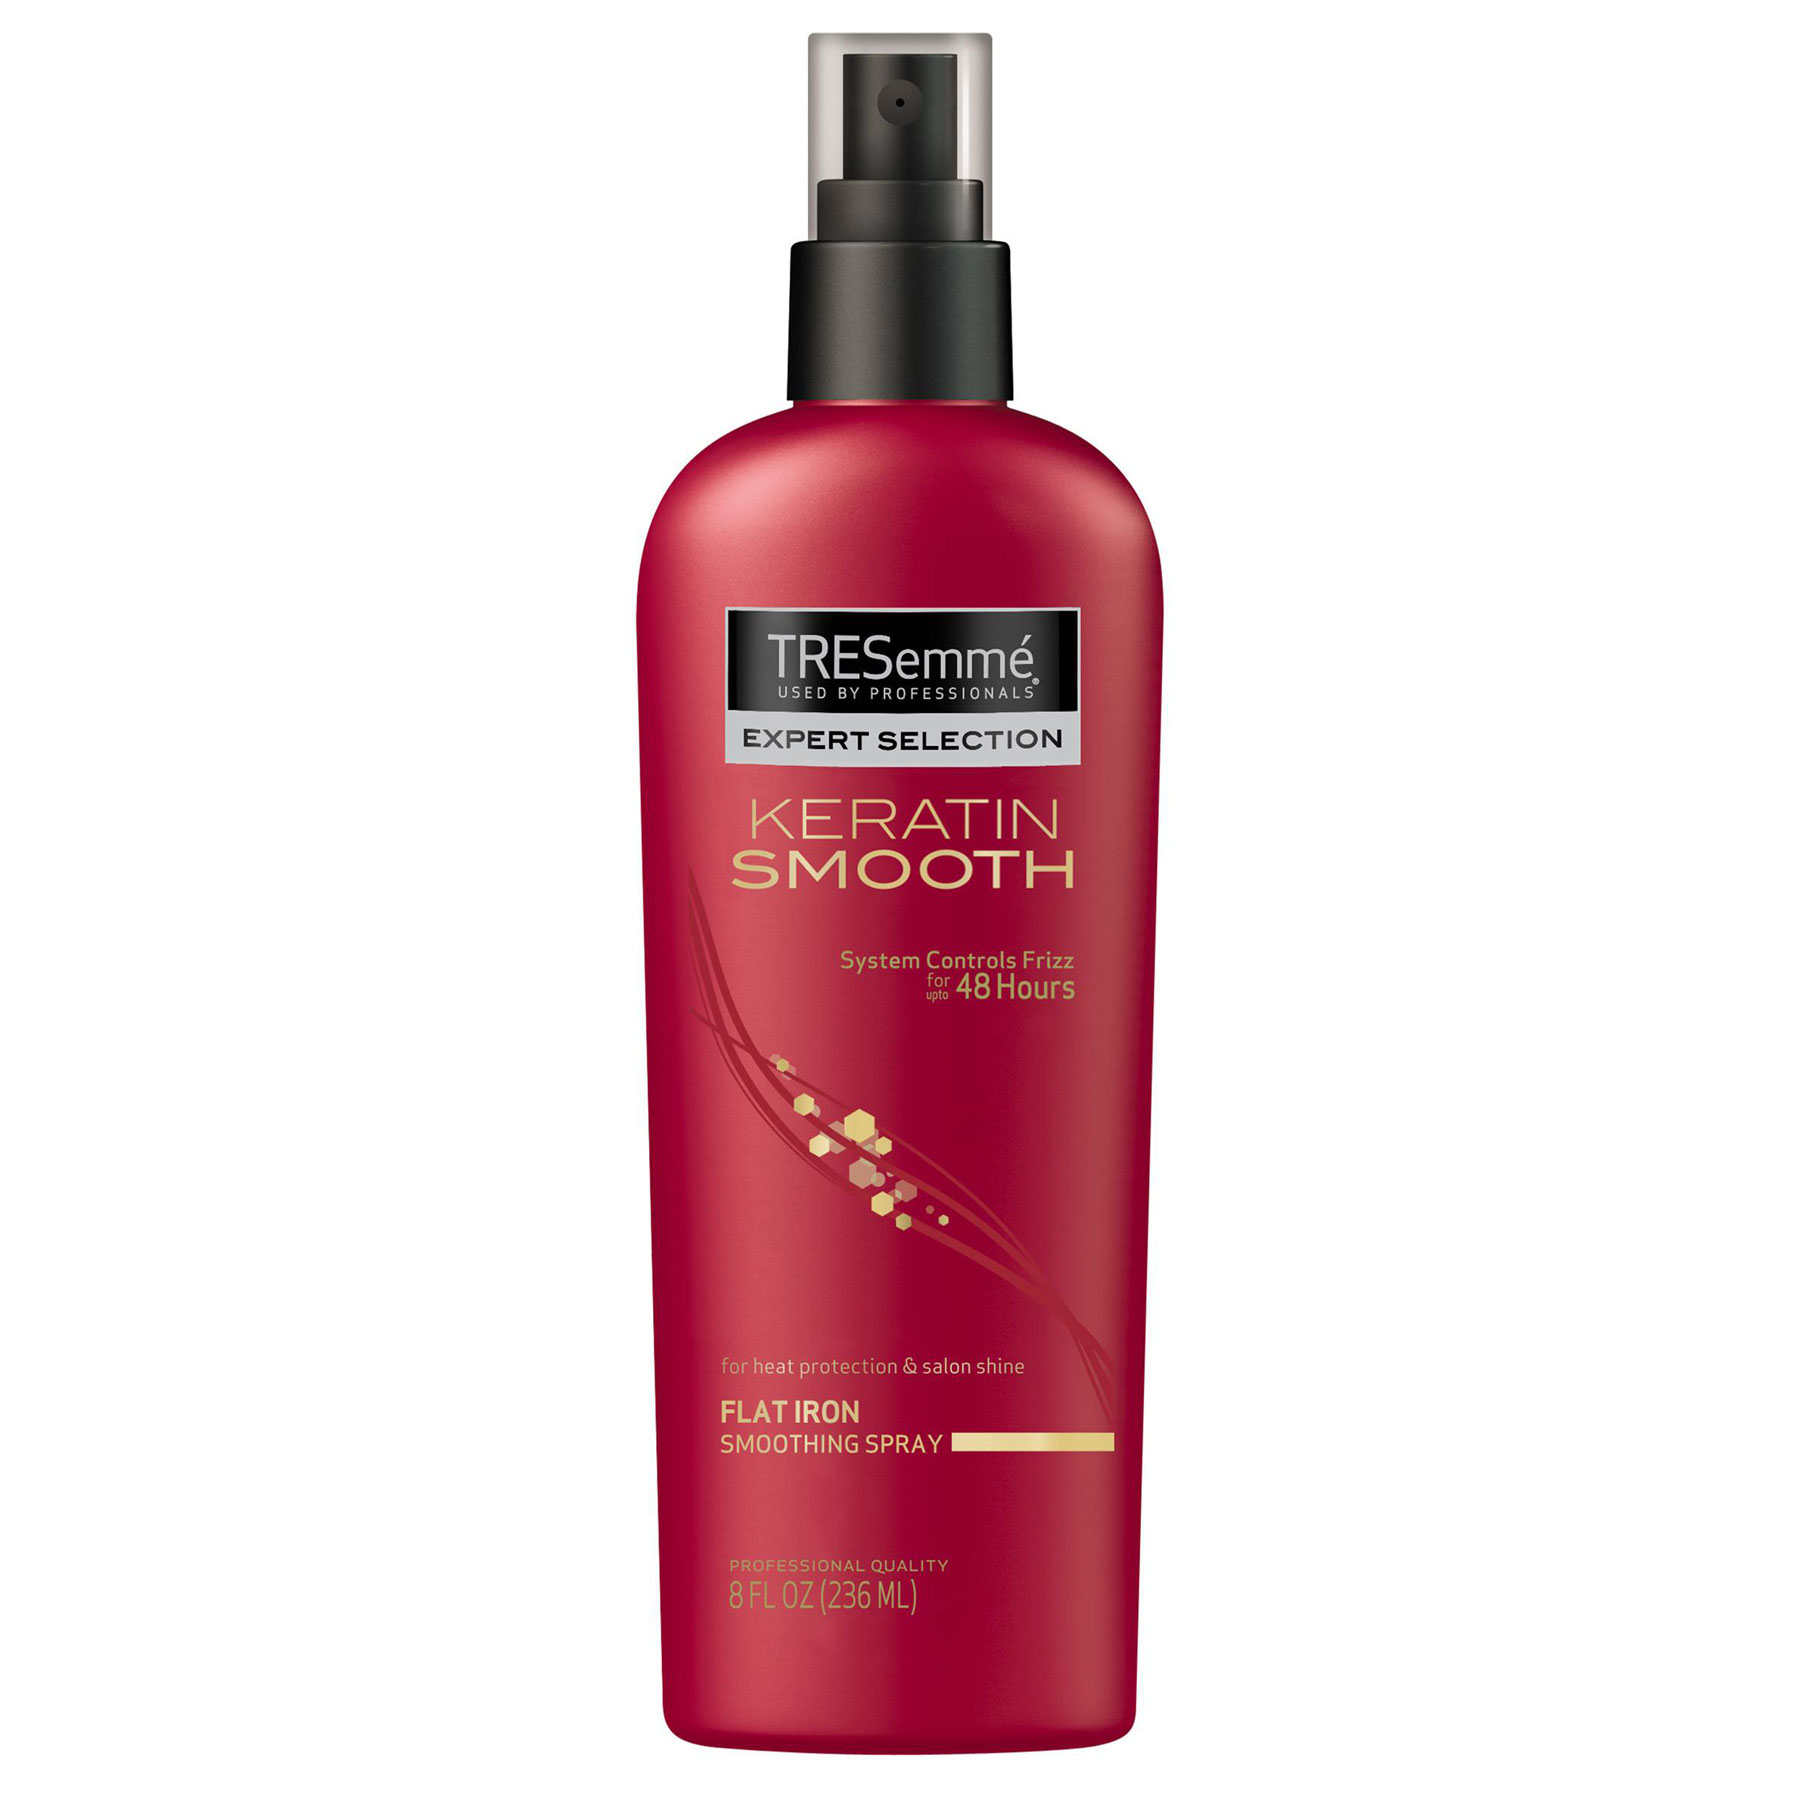 Tresemme Keratin Smooth Flat Iron Smoothing Spray